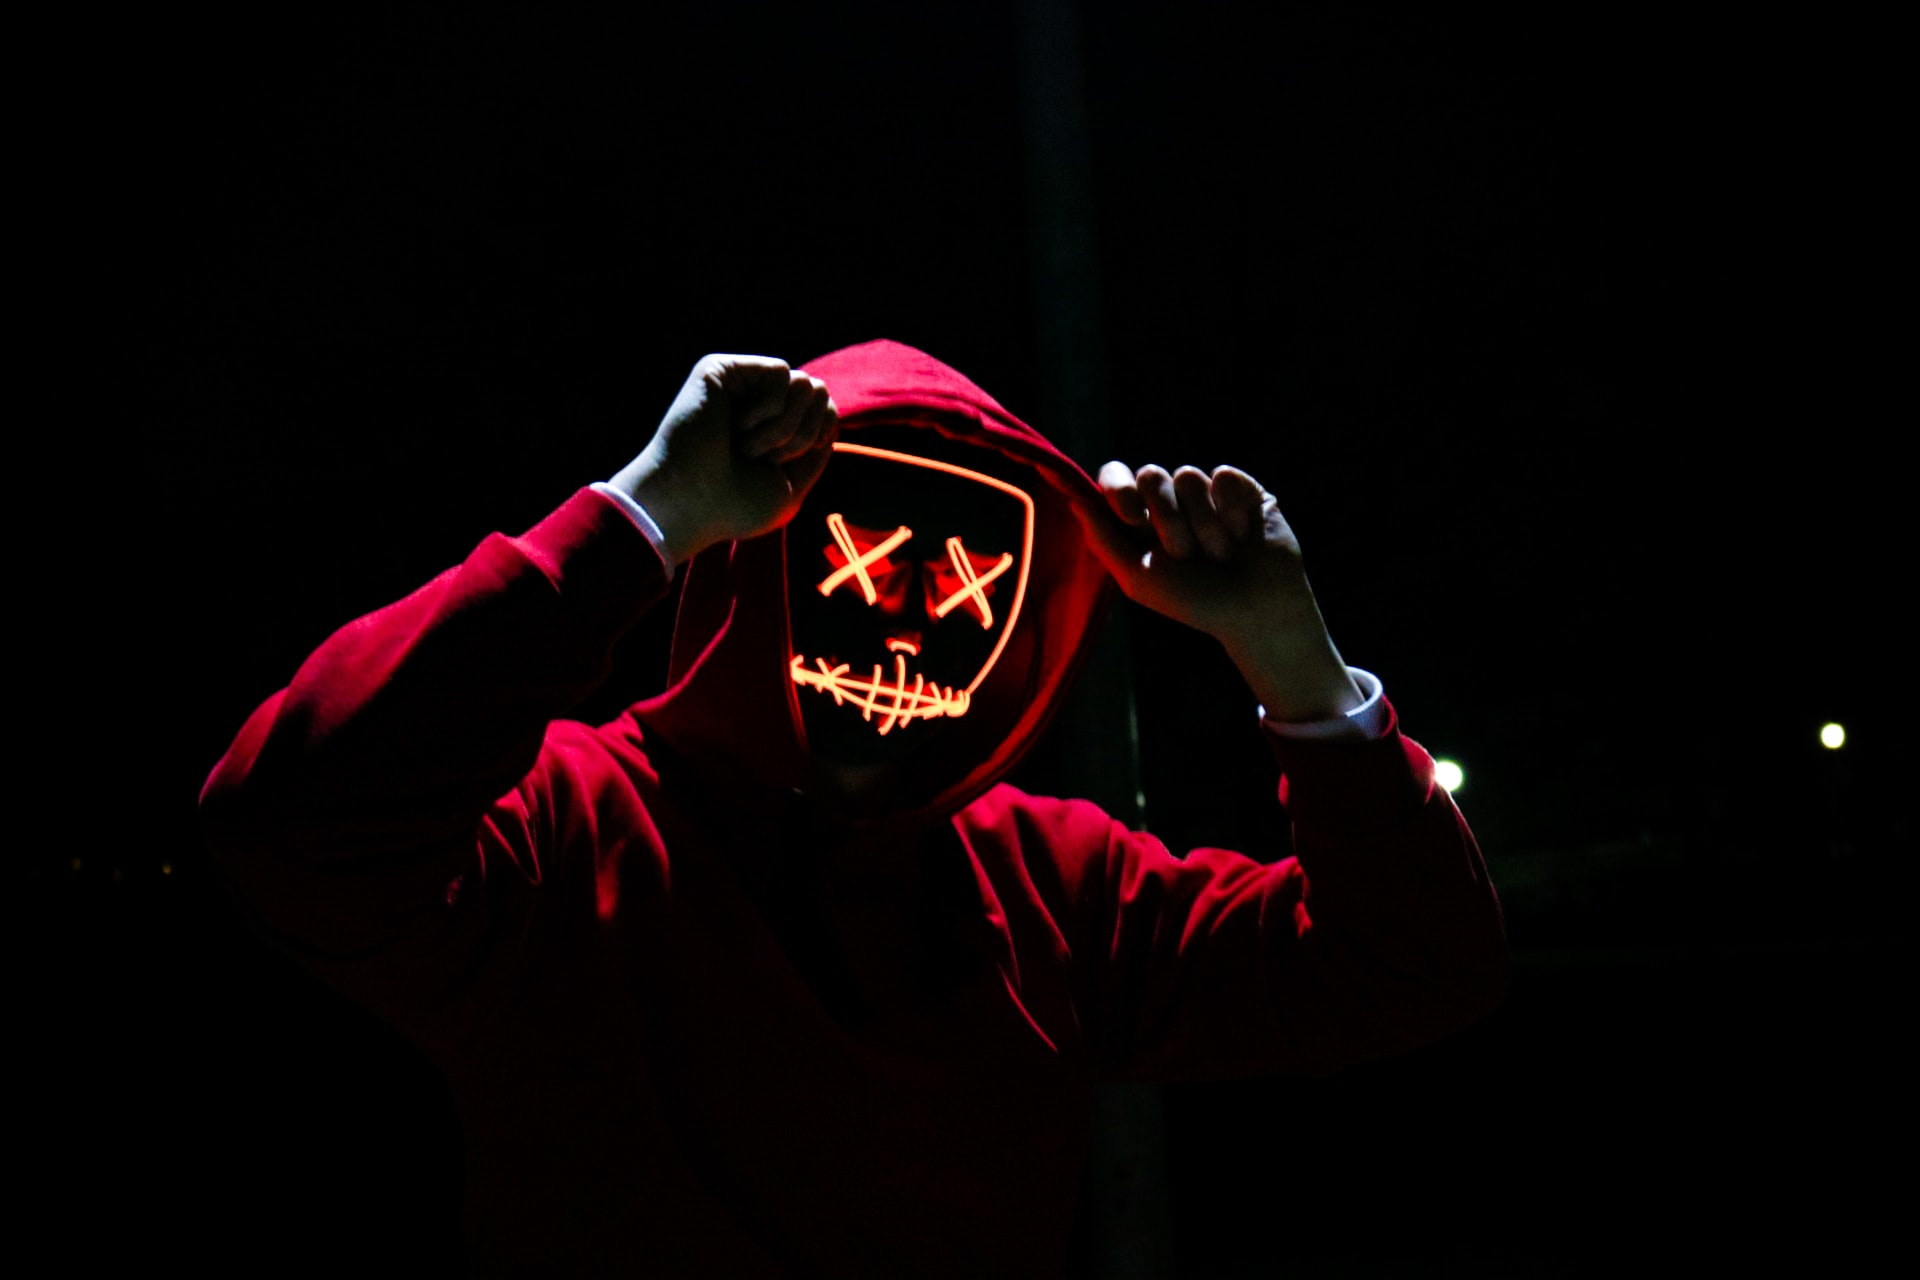 man in red hoodie and mask